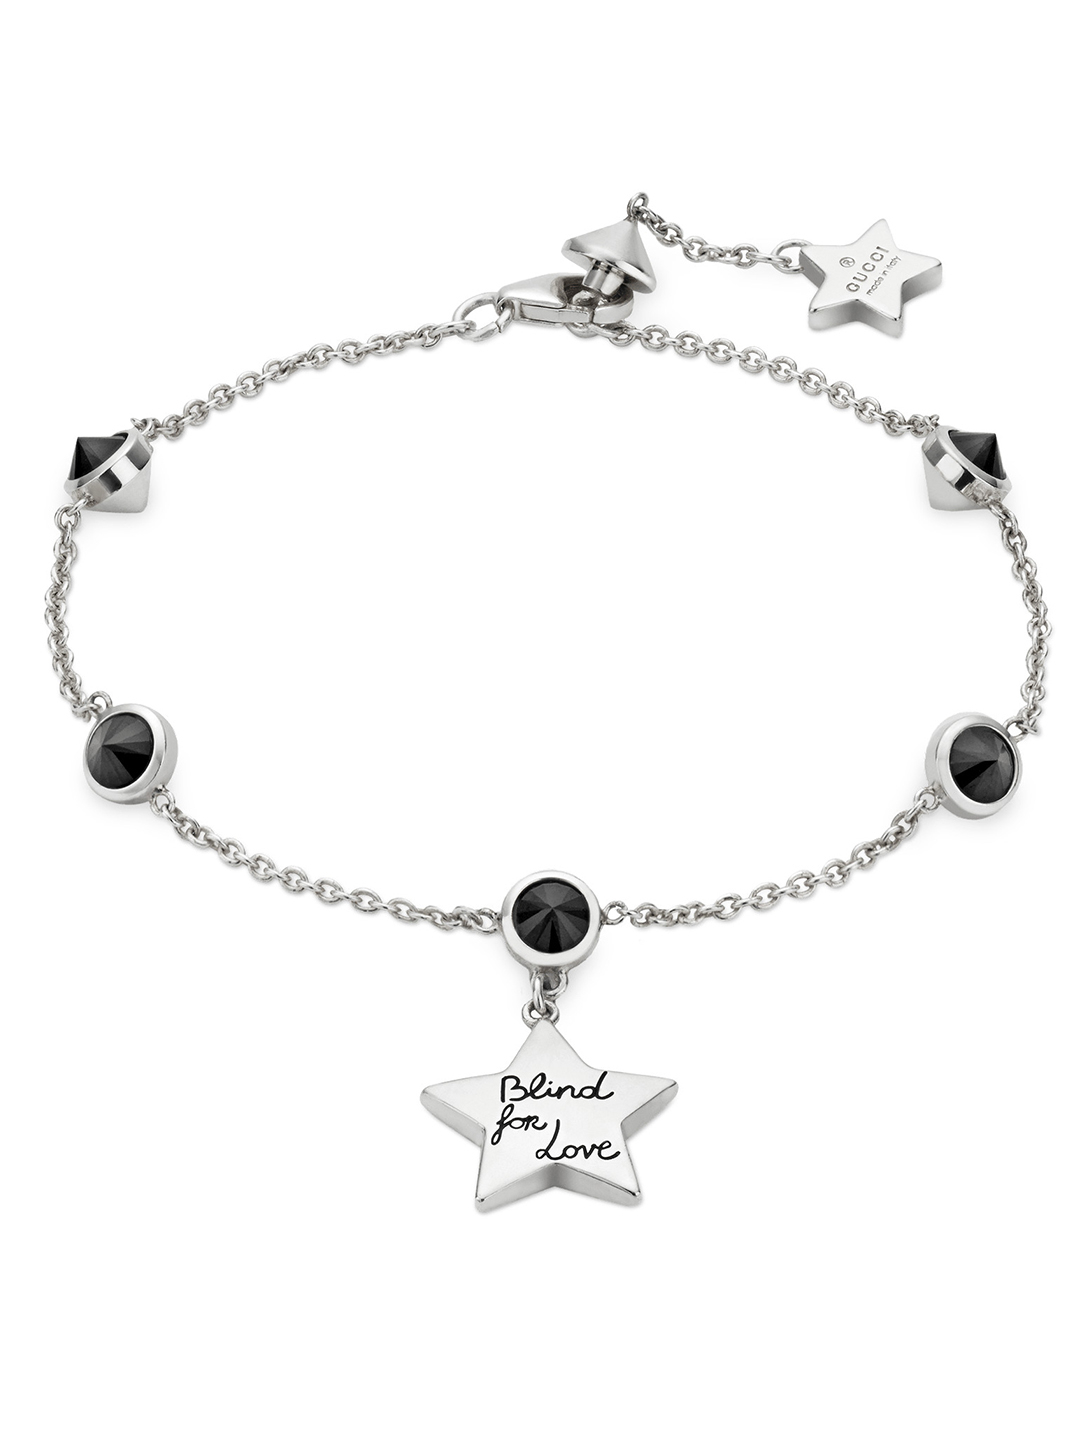 122aea74a63 GUCCI Blind For Love Sterling Silver Bracelet Women's Silver ...